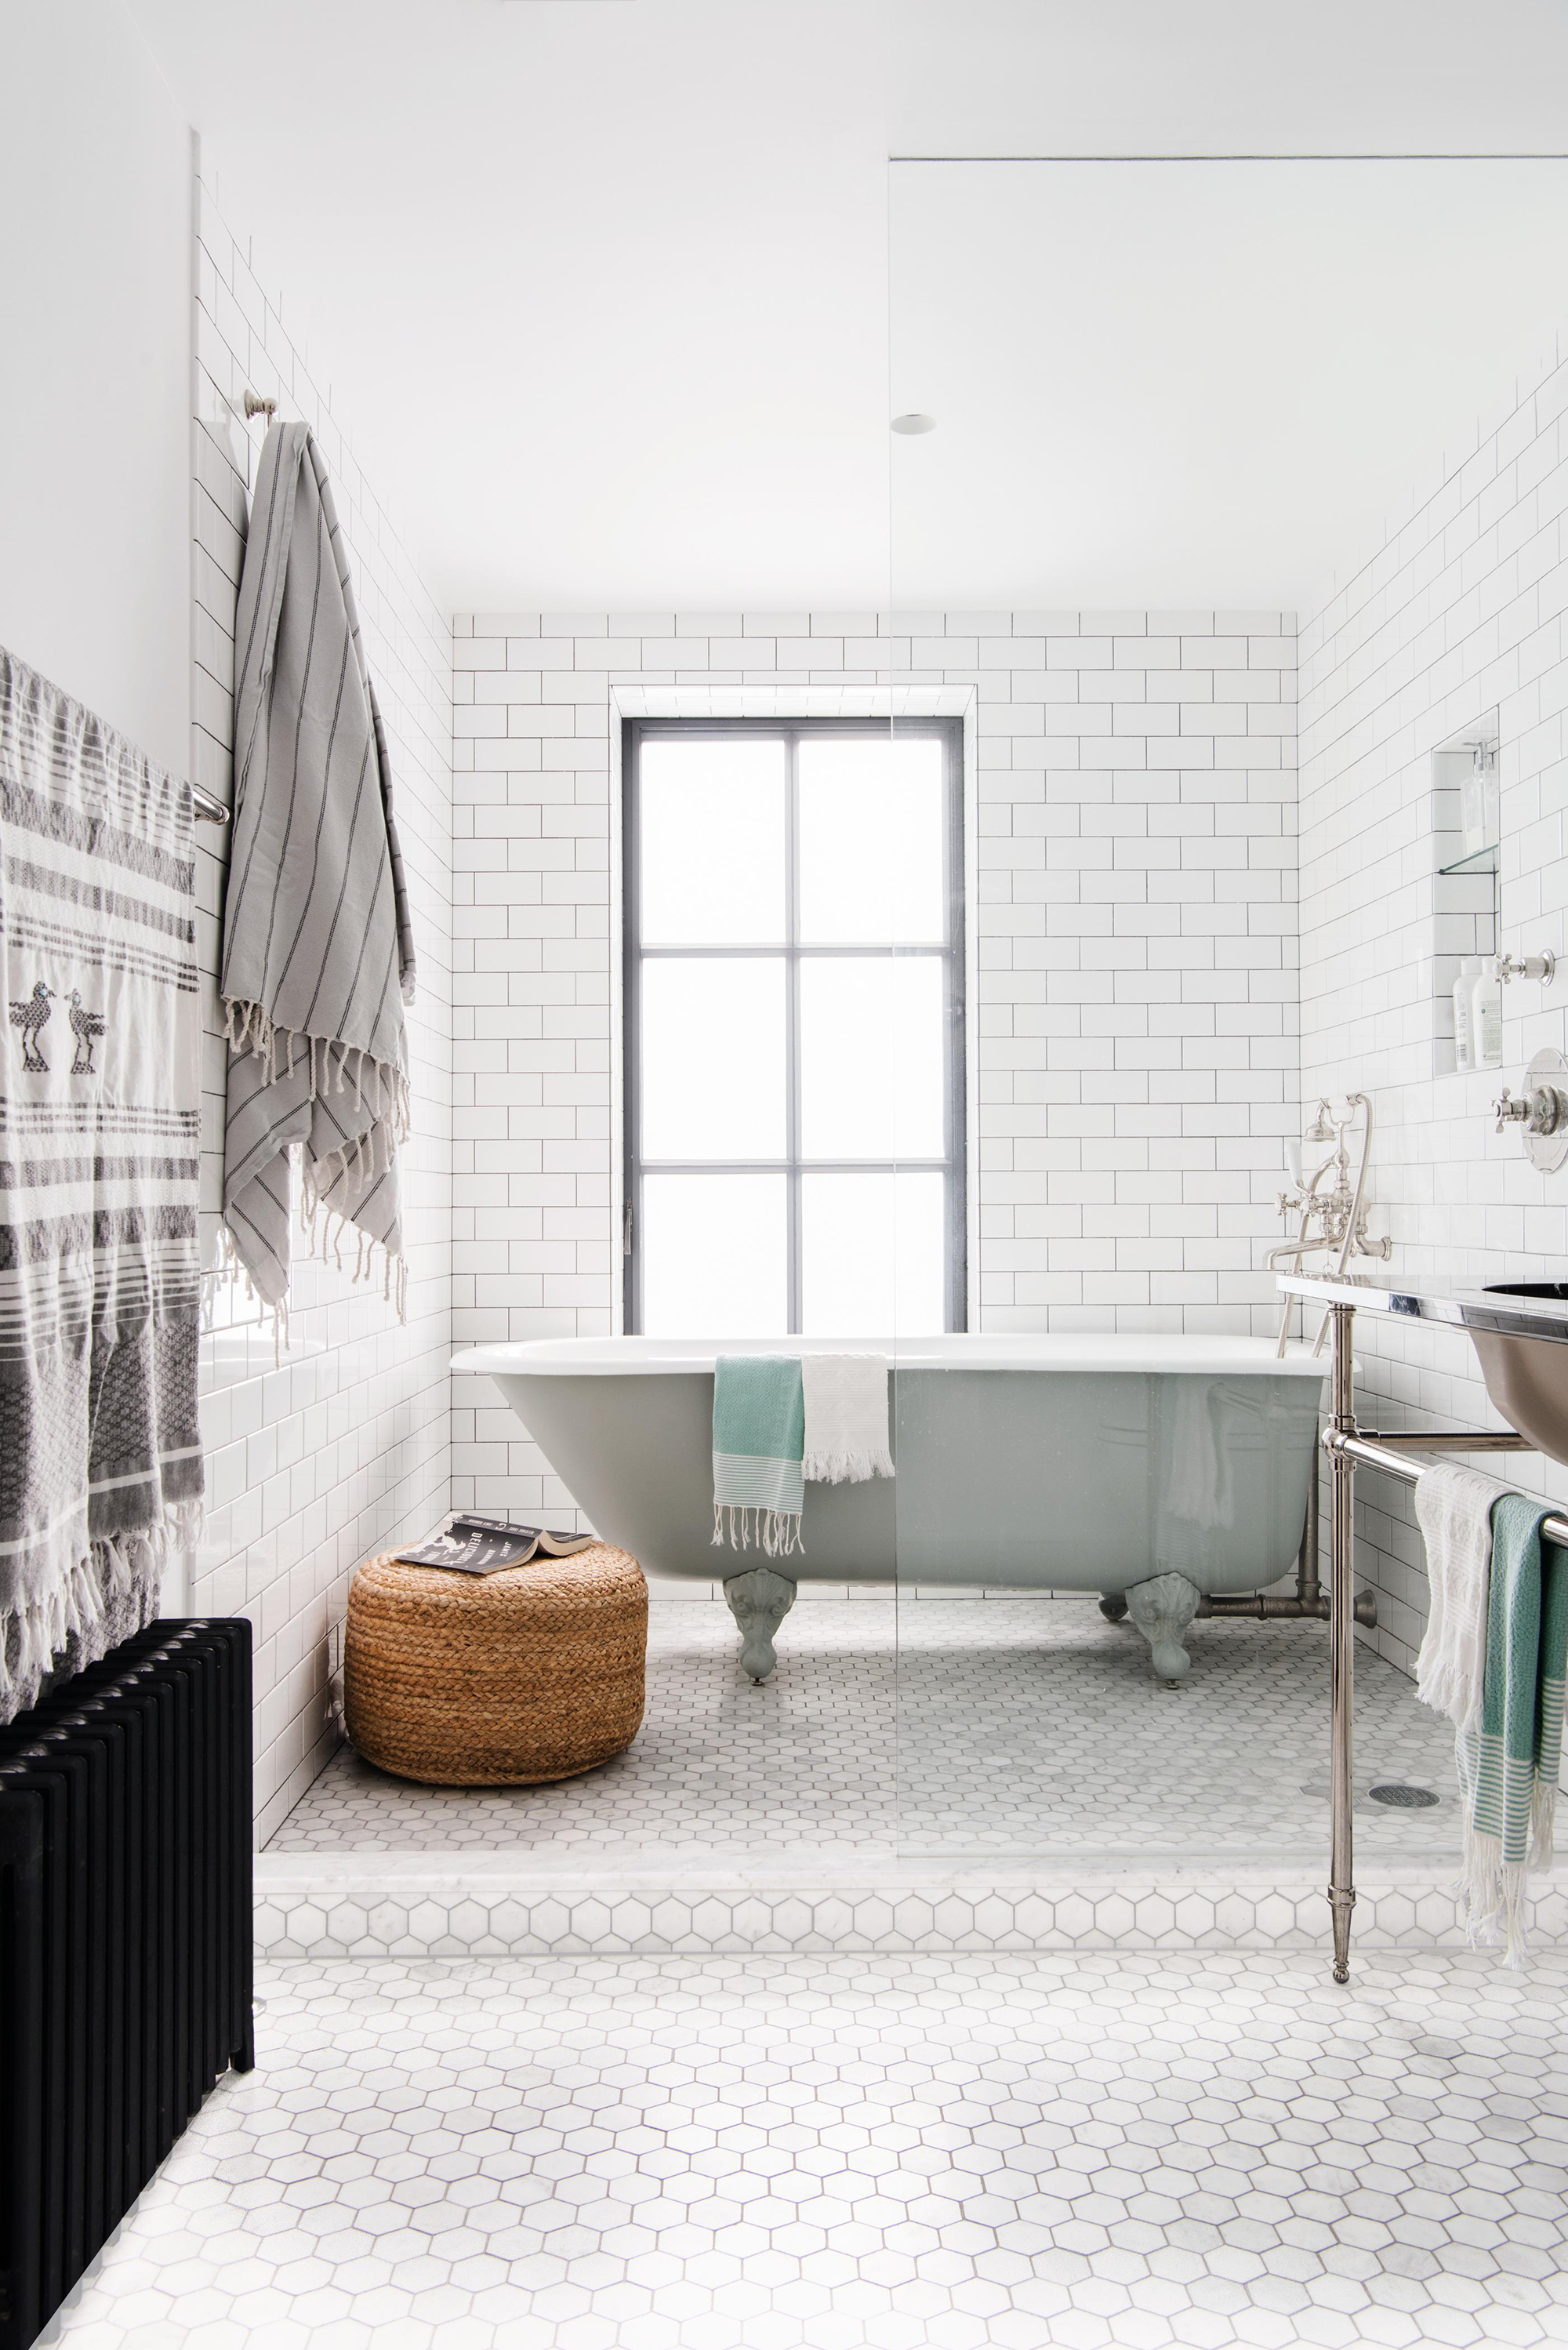 13 Smart Ways to Upgrade Your Bathroom Without Renovating It